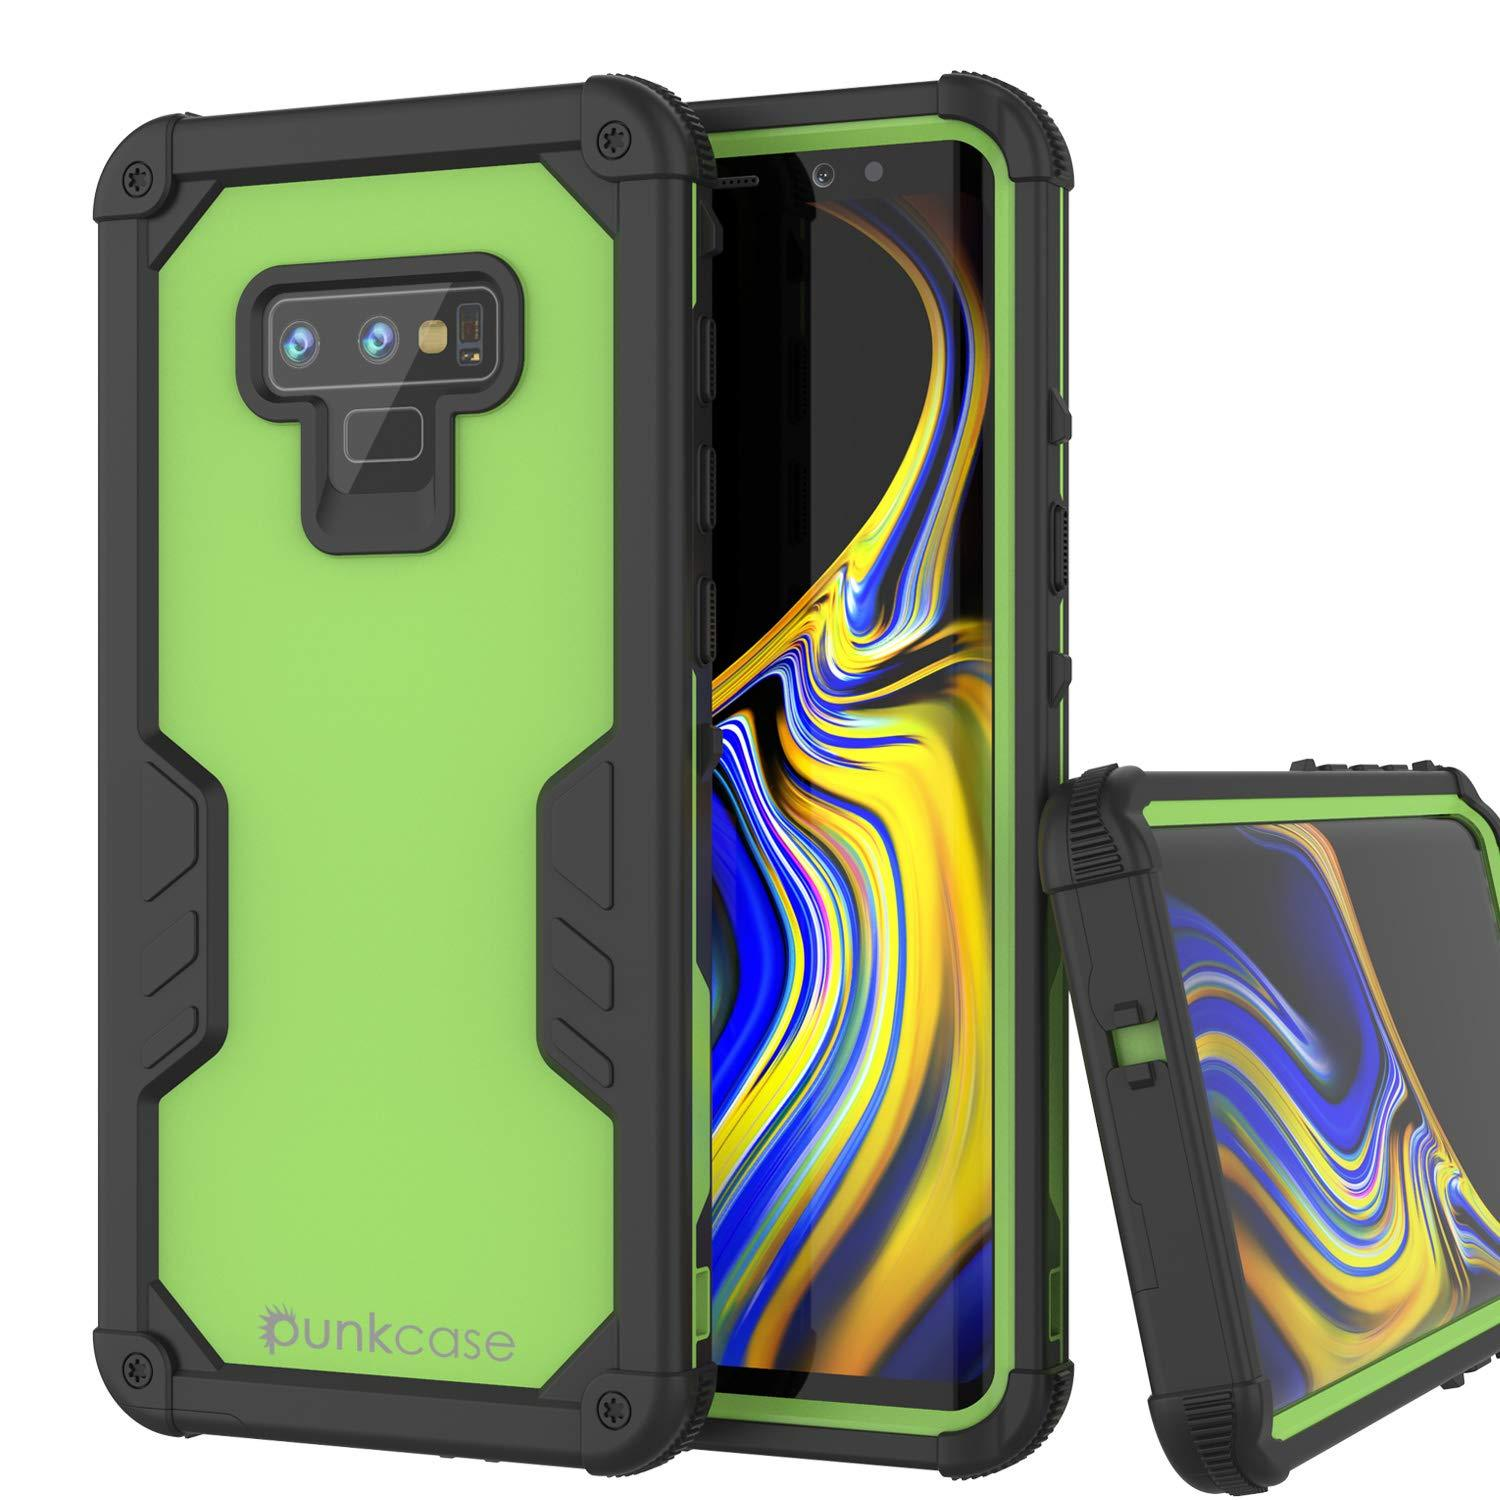 Punkcase Galaxy Note 9 Waterproof Case [Navy Seal Extreme Series] Armor Cover W/ Built In Screen Protector [Light Green]